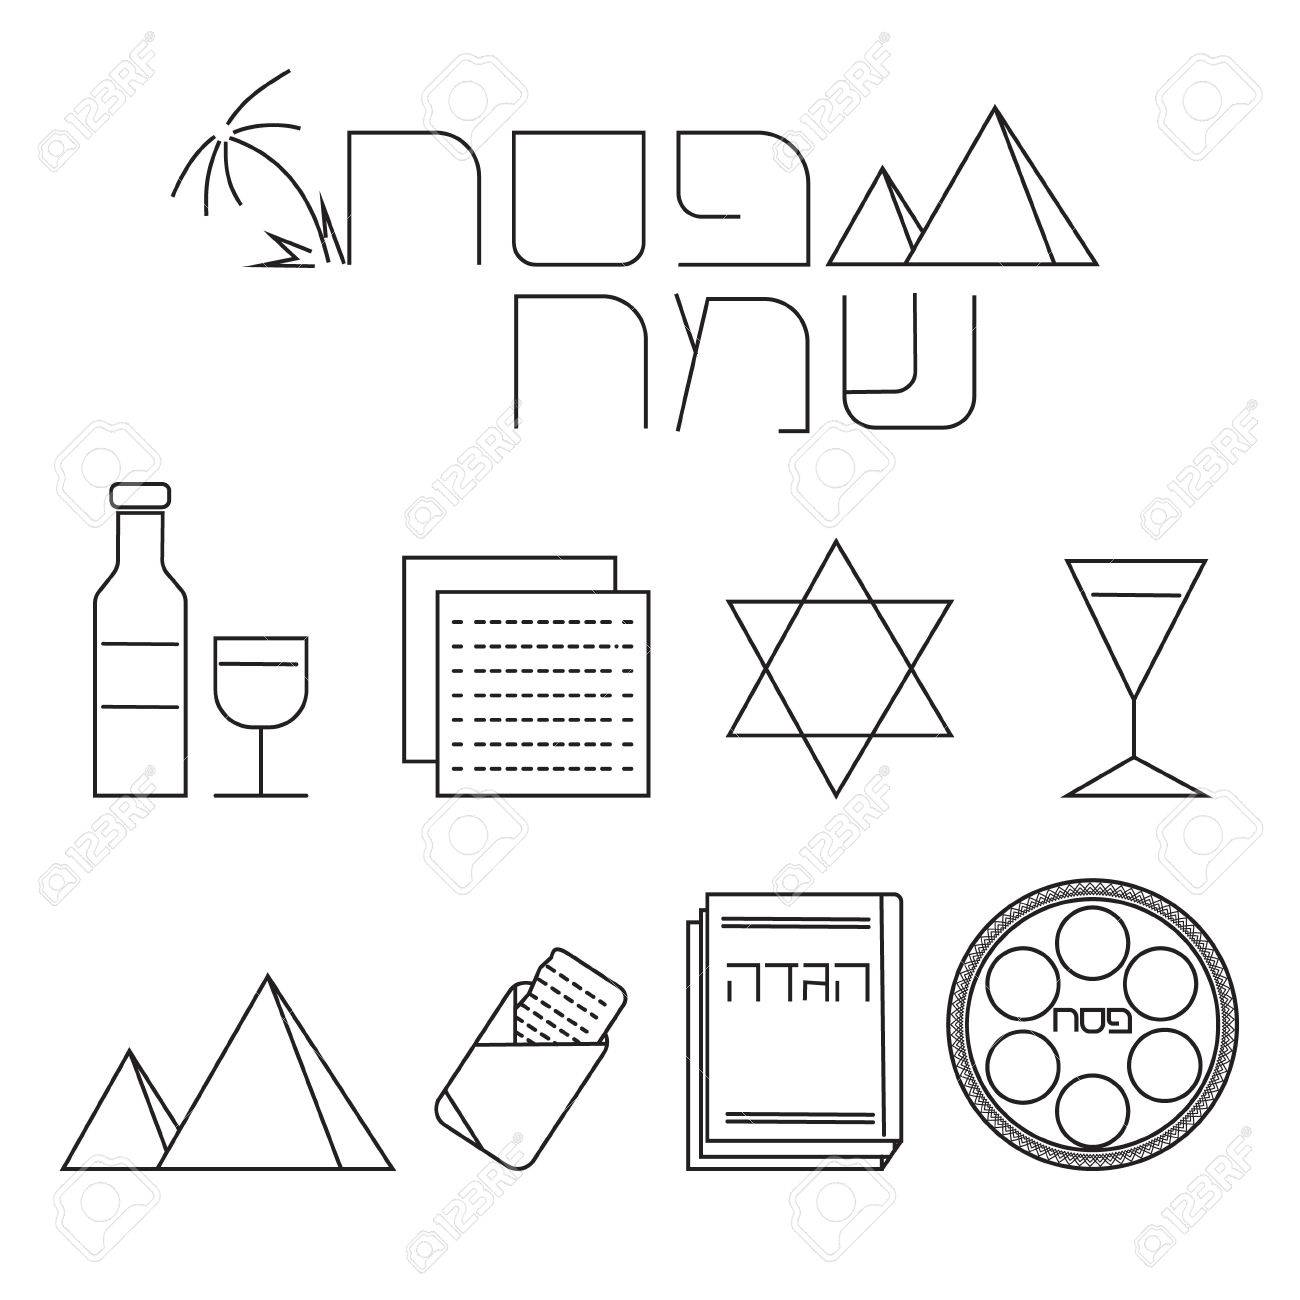 Passover Line Icons Set Linear Icons Passover Seder Icons